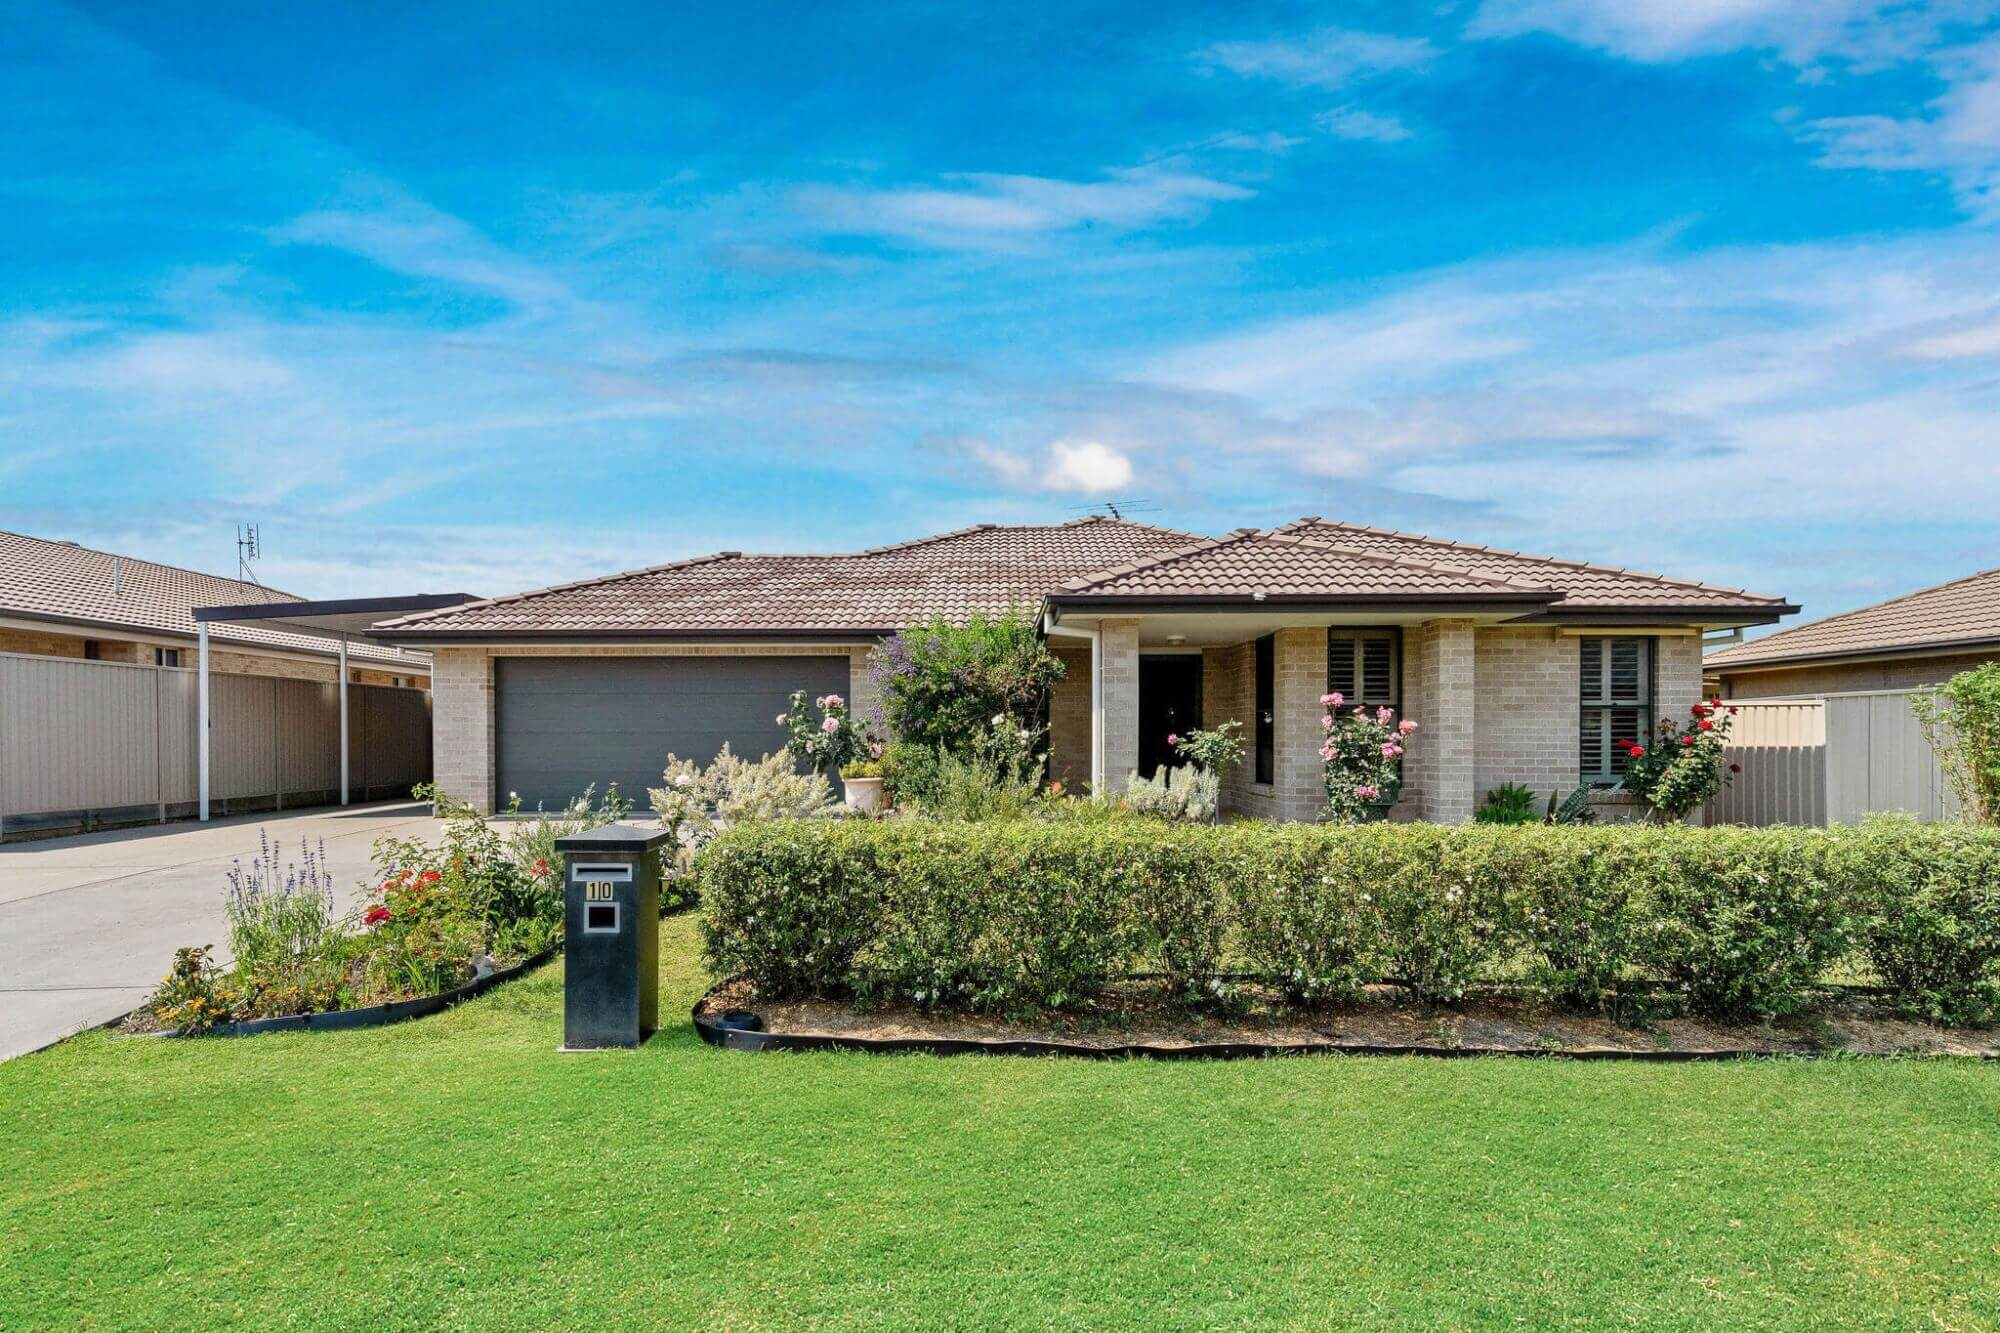 10 Errol Crescent Heddon Greta NSW 2321